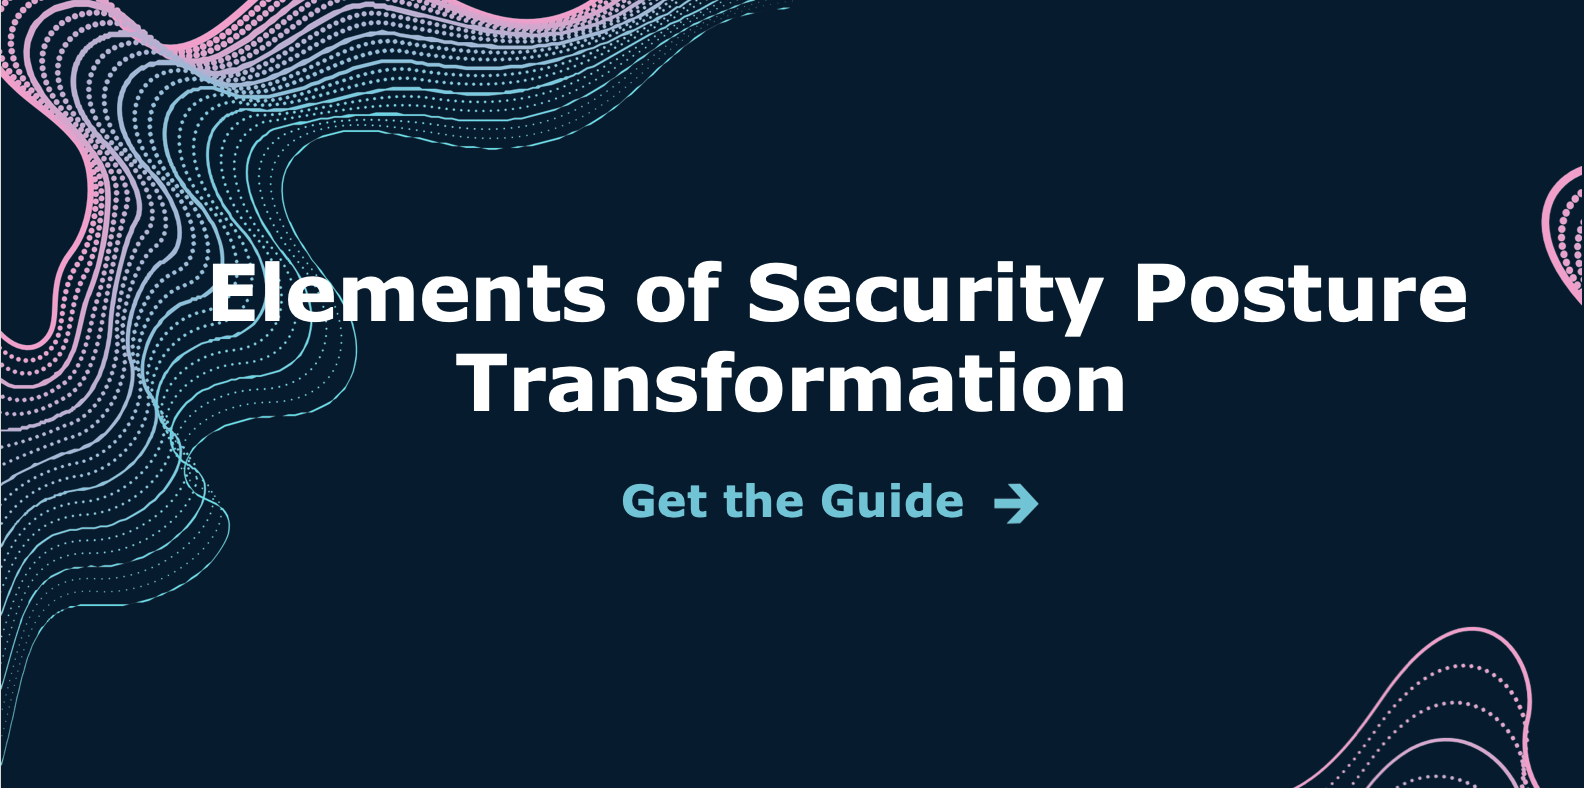 Elements of Security Posture Transformation